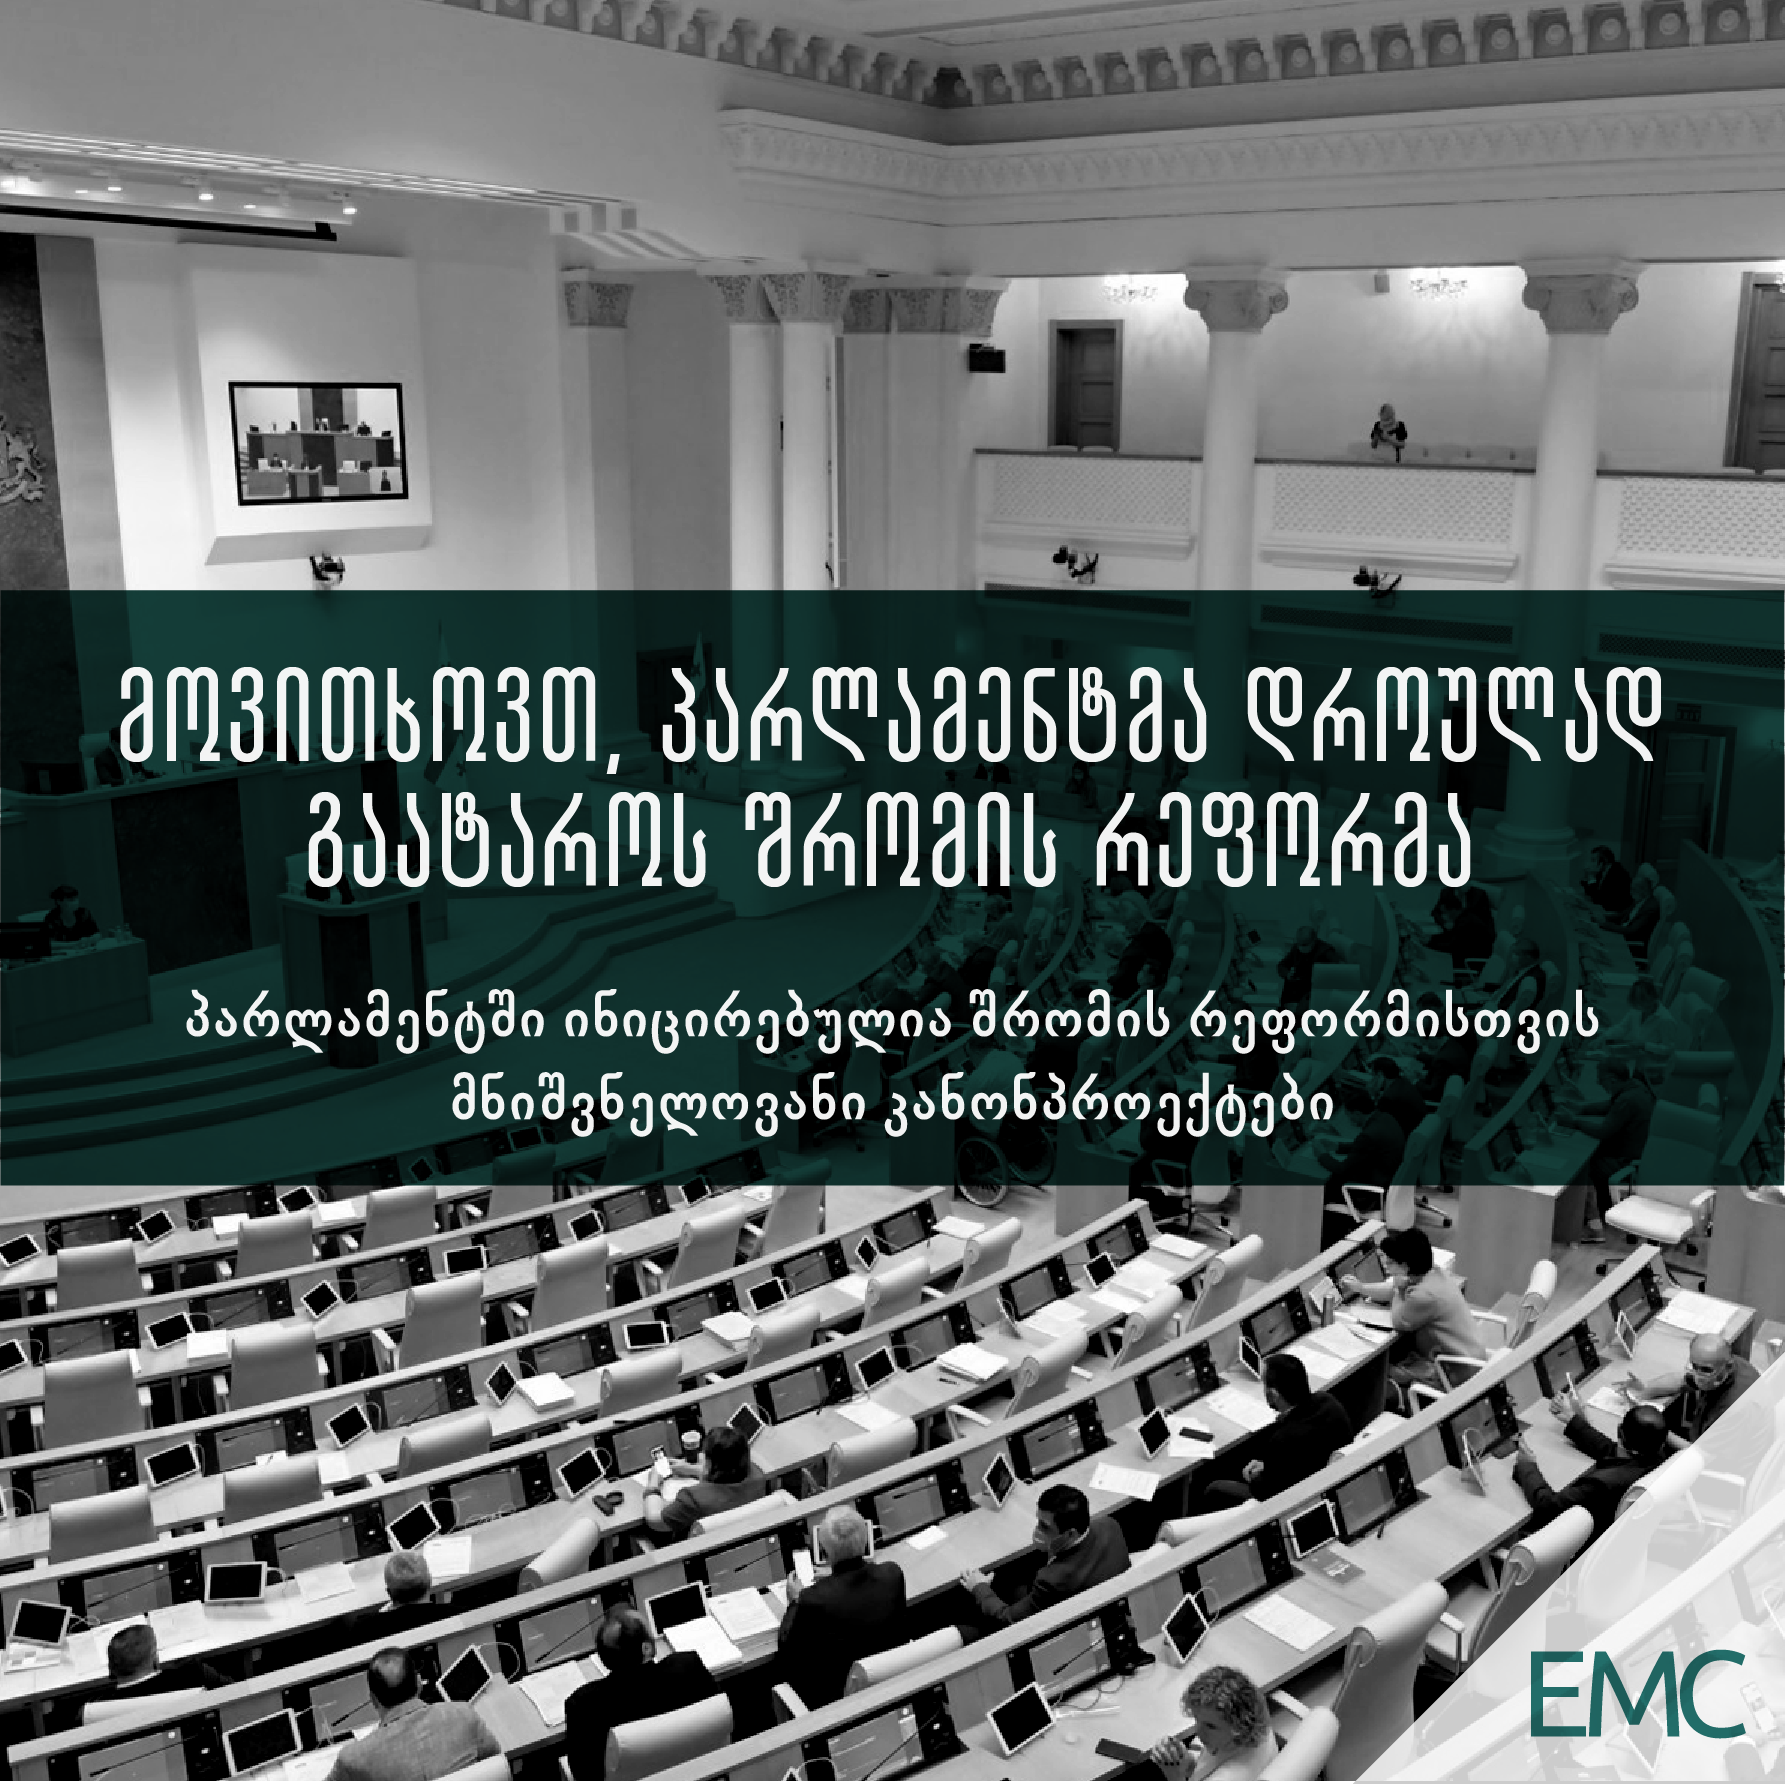 EMC evaluates a package of amendments to the Labor Law